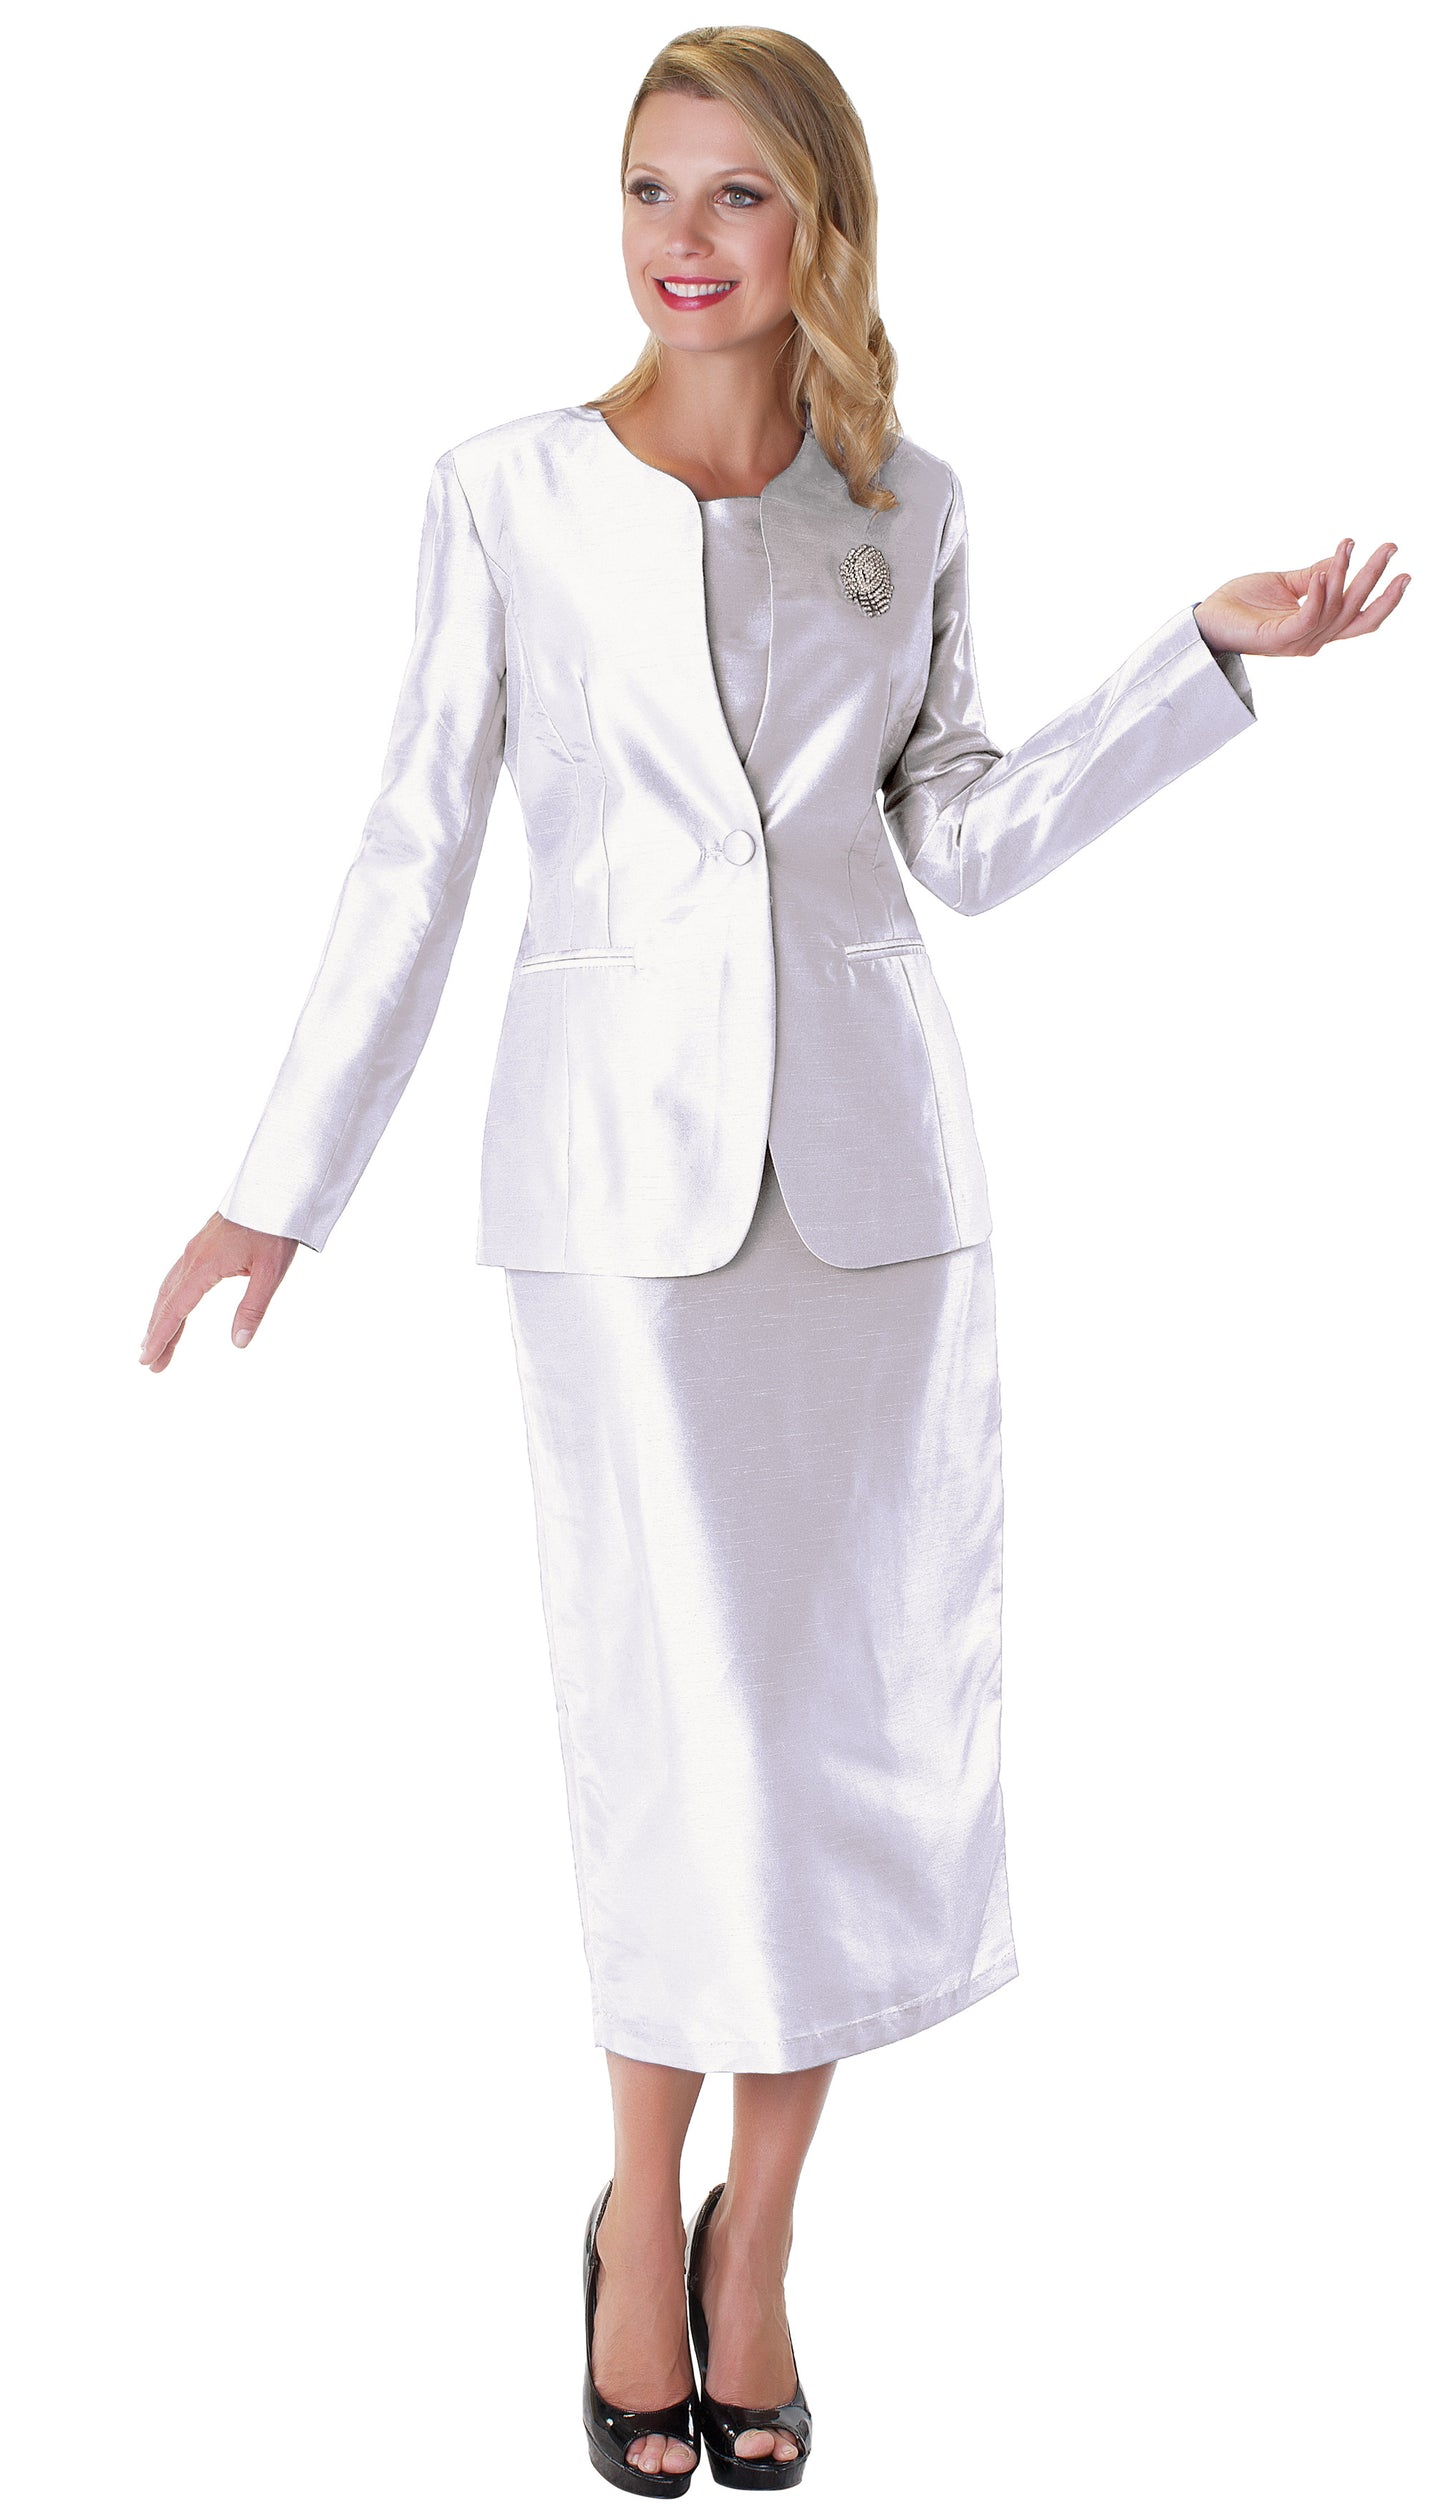 Tally Taylor Group Suit 4350